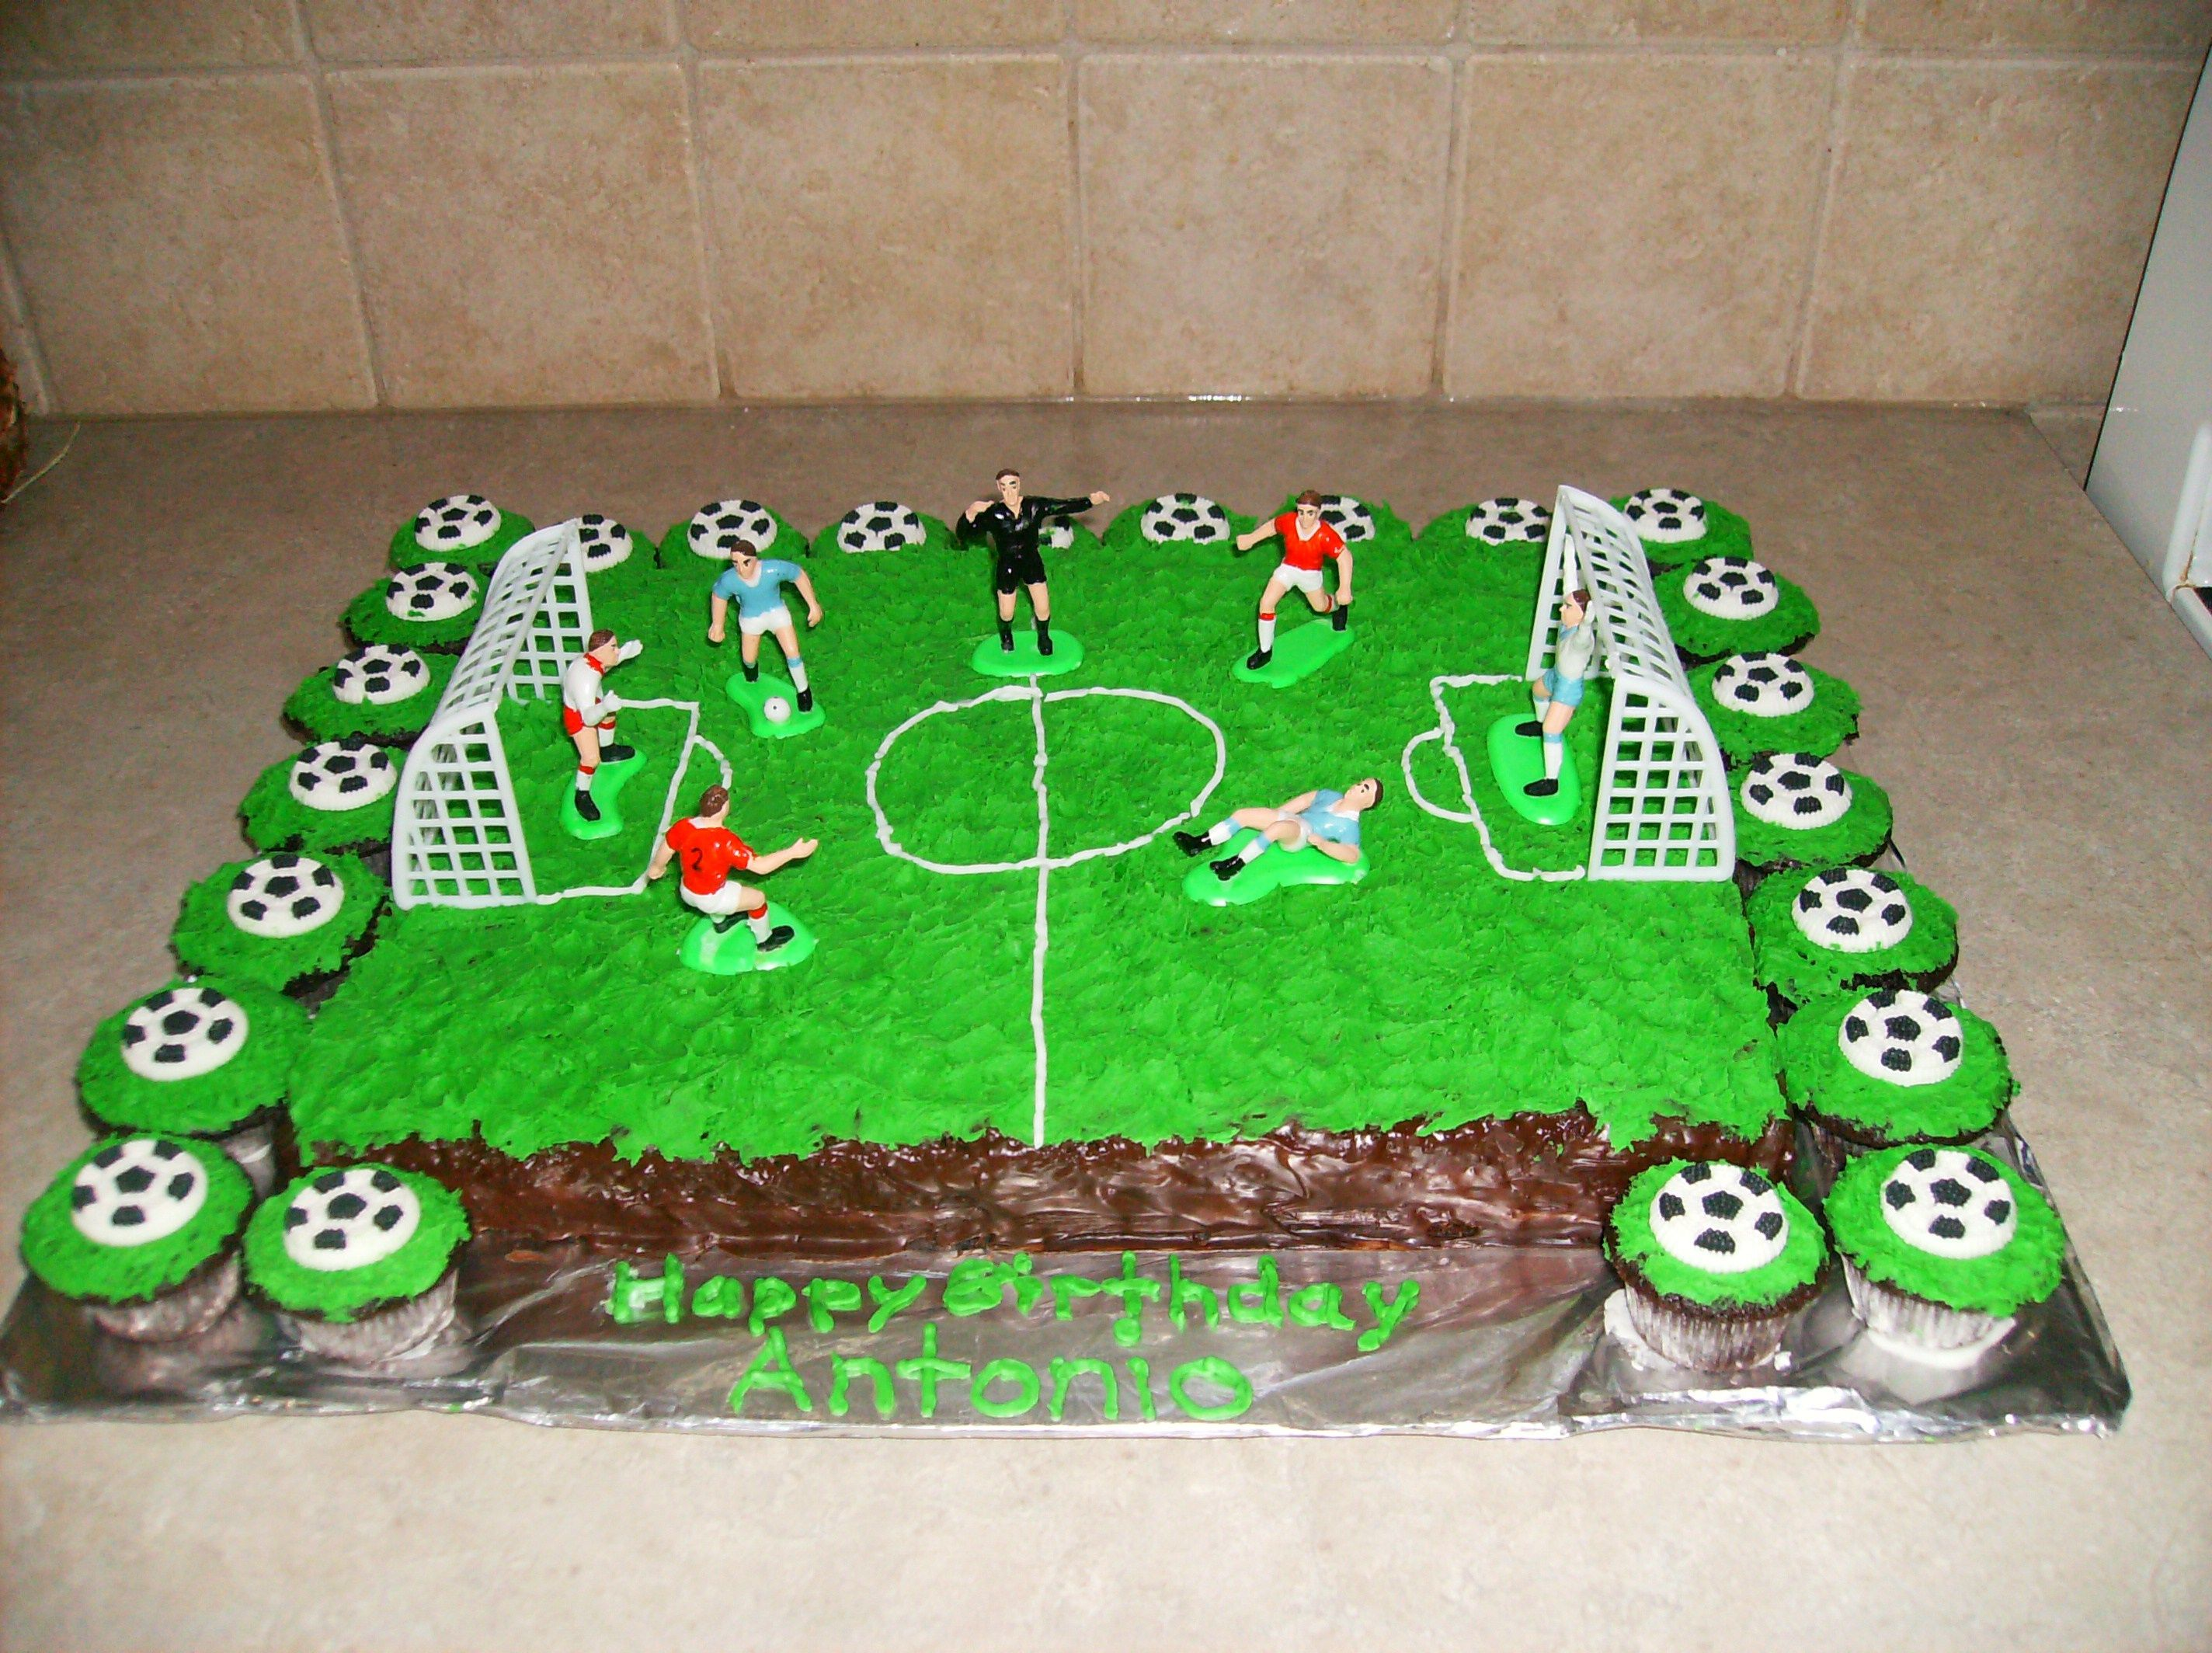 21 Excellent Image Of Soccer Birthday Cakes Birijus Com Soccer Birthday Cakes Soccer Birthday Soccer Birthday Parties